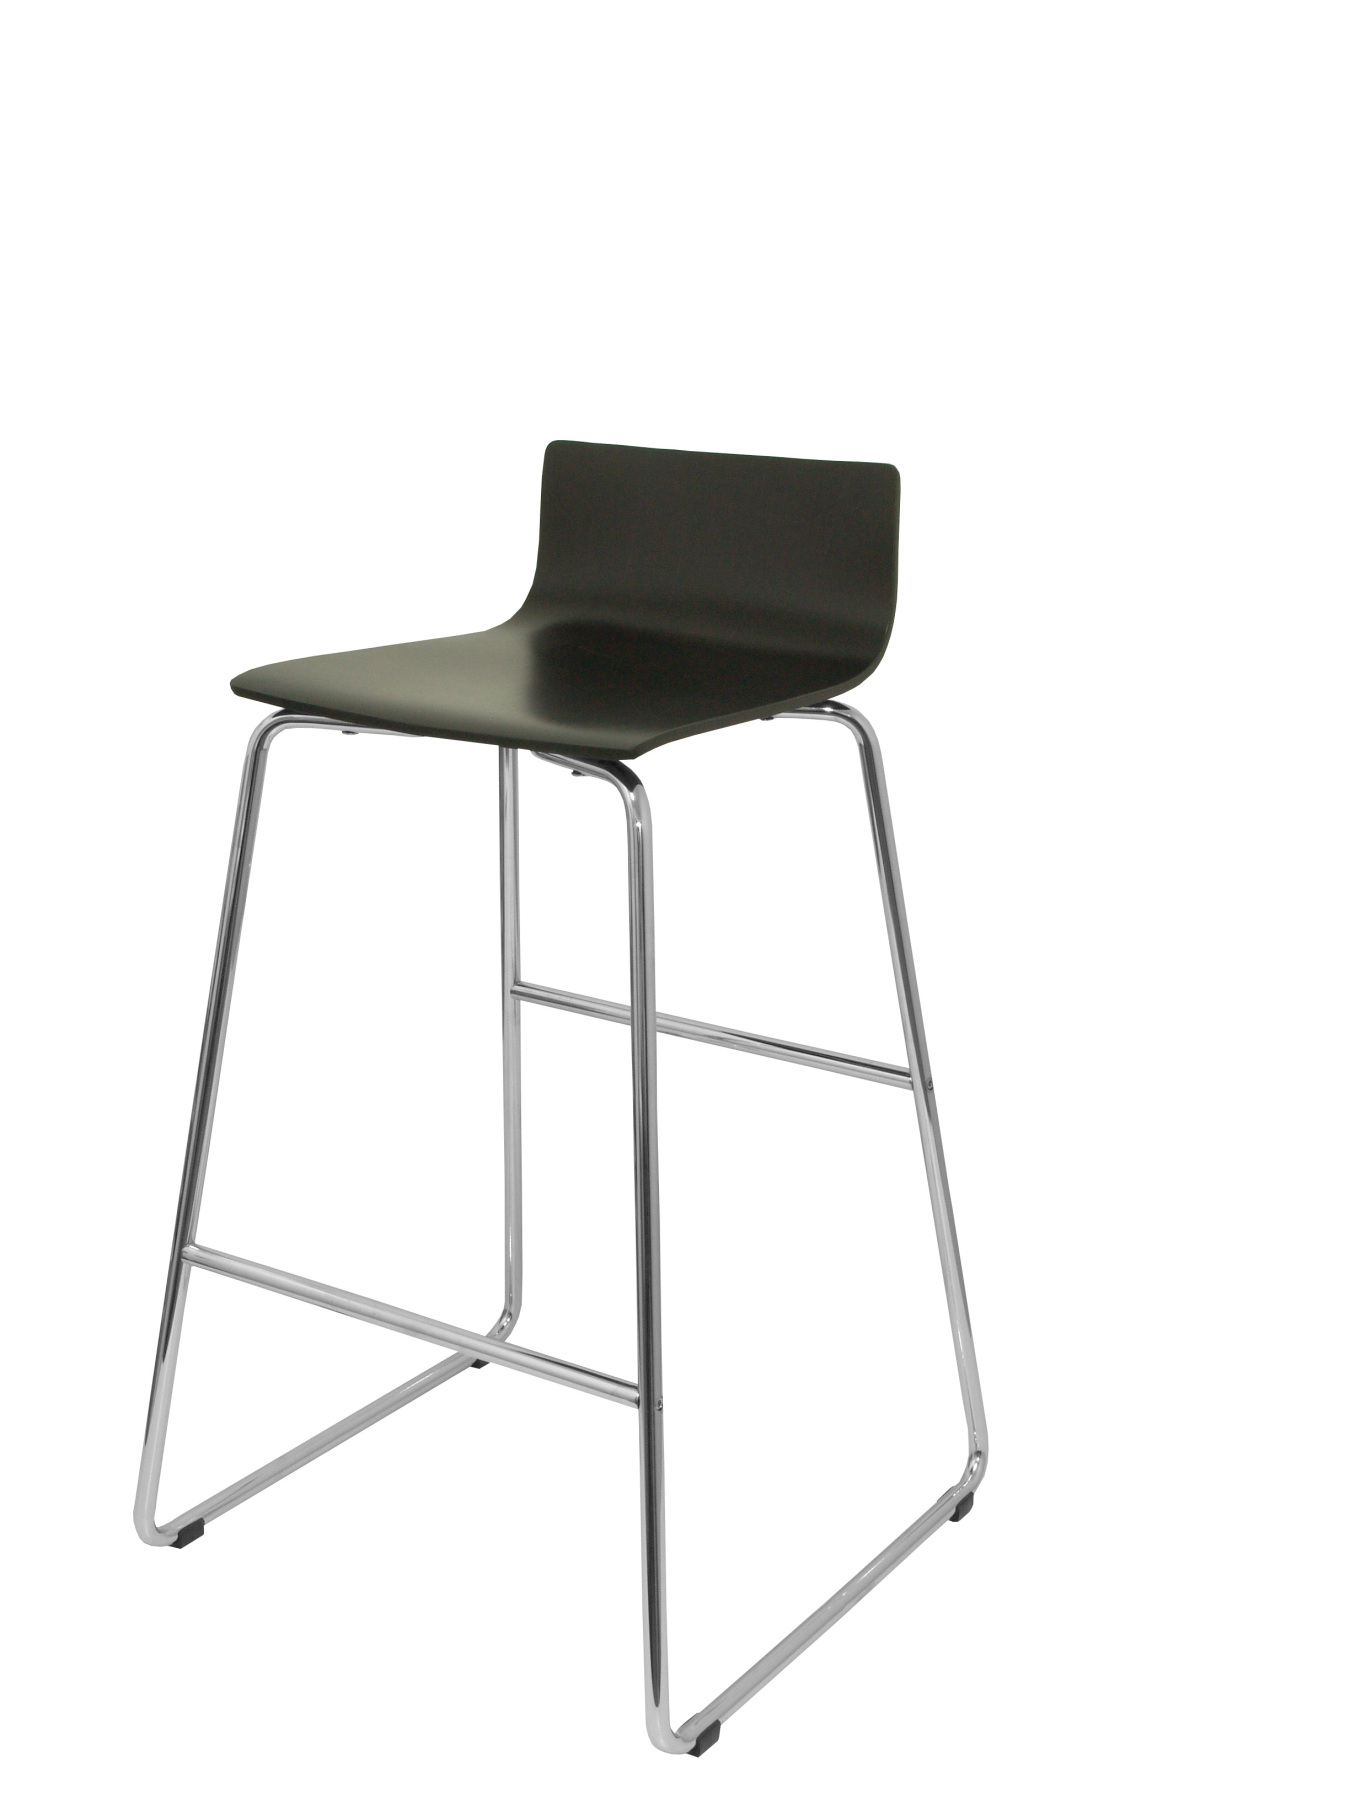 Stool Vending With Chrome Bold Structure And Dipstick's Foot Pegs-up Seat Black TAPHOLE AND CURLED Colored Wood Model